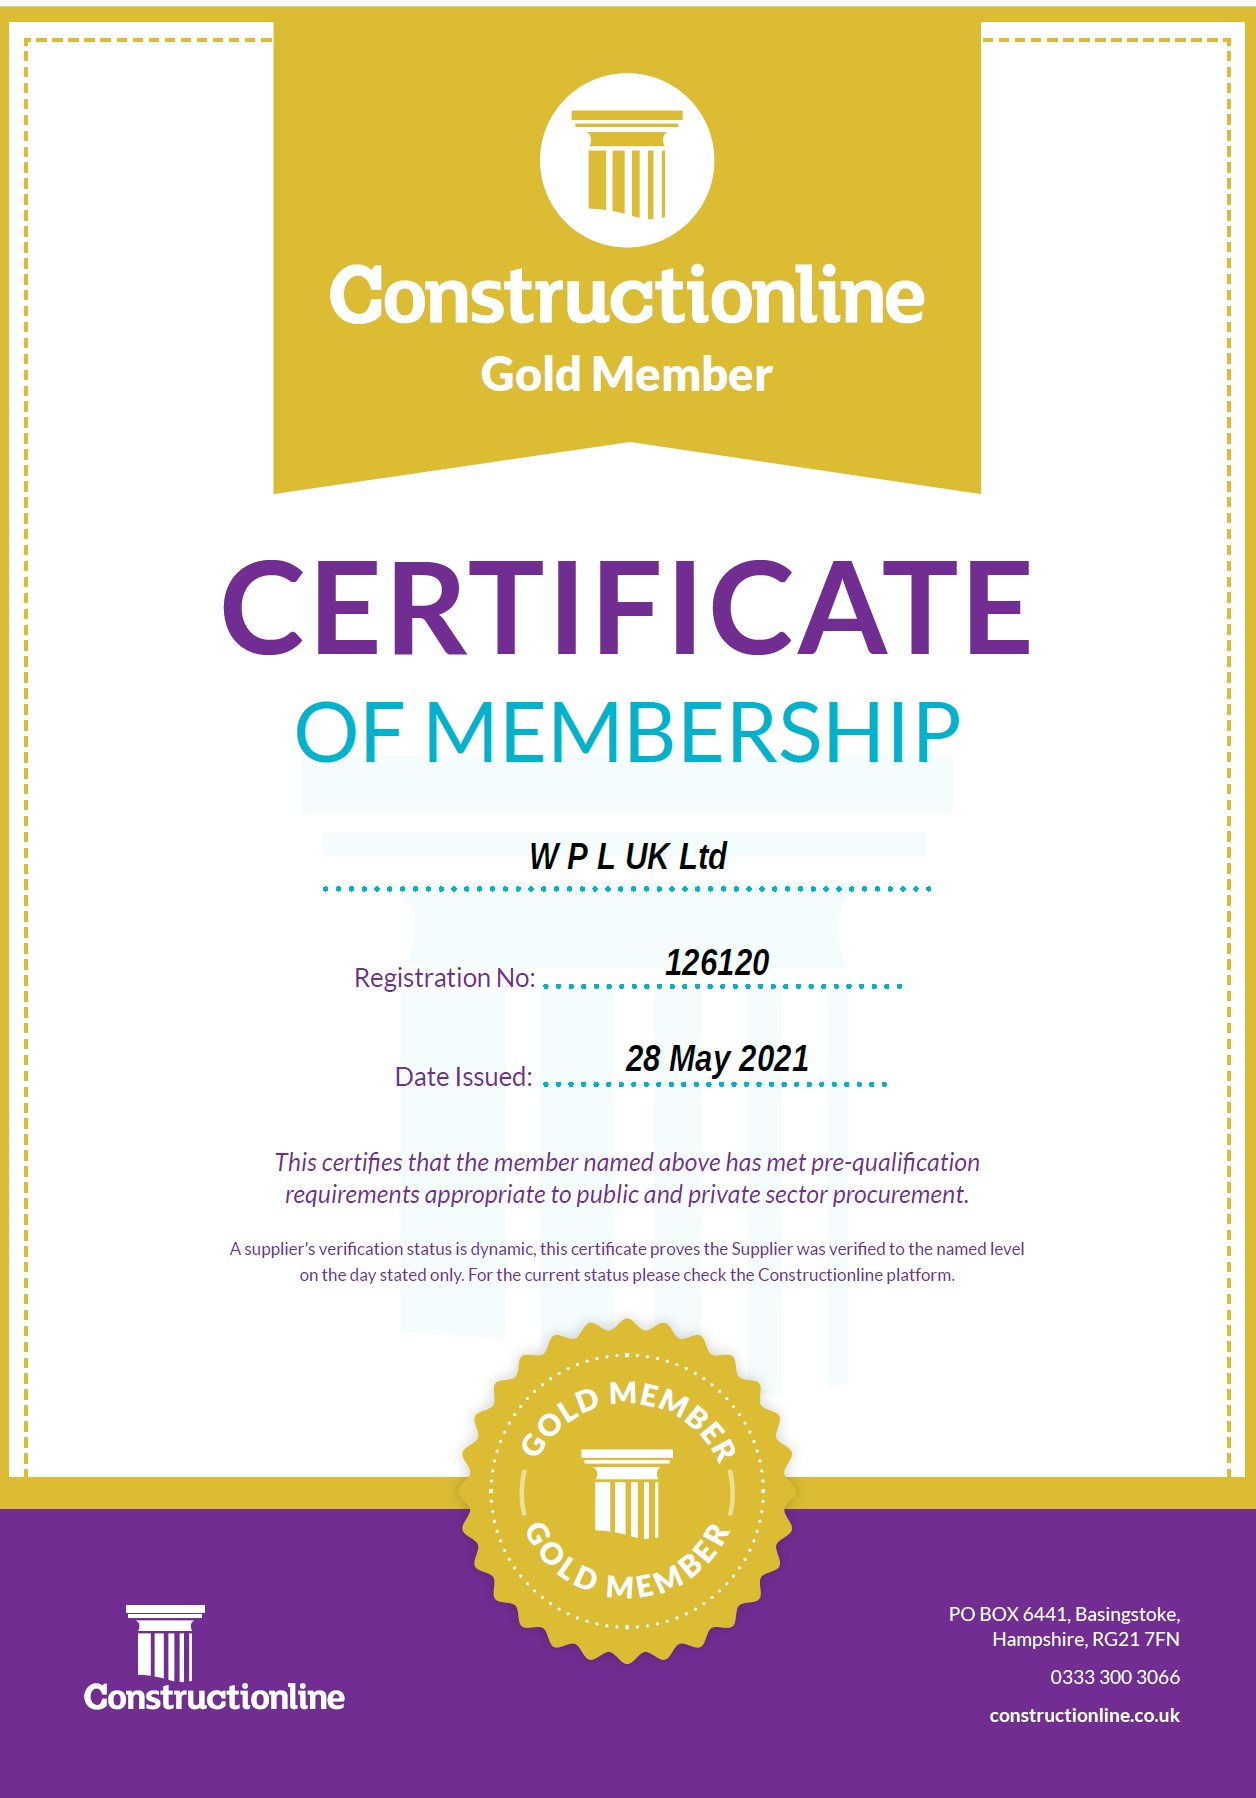 WPLUK Constructionline GOLD Certificate Issued 28th May 2021